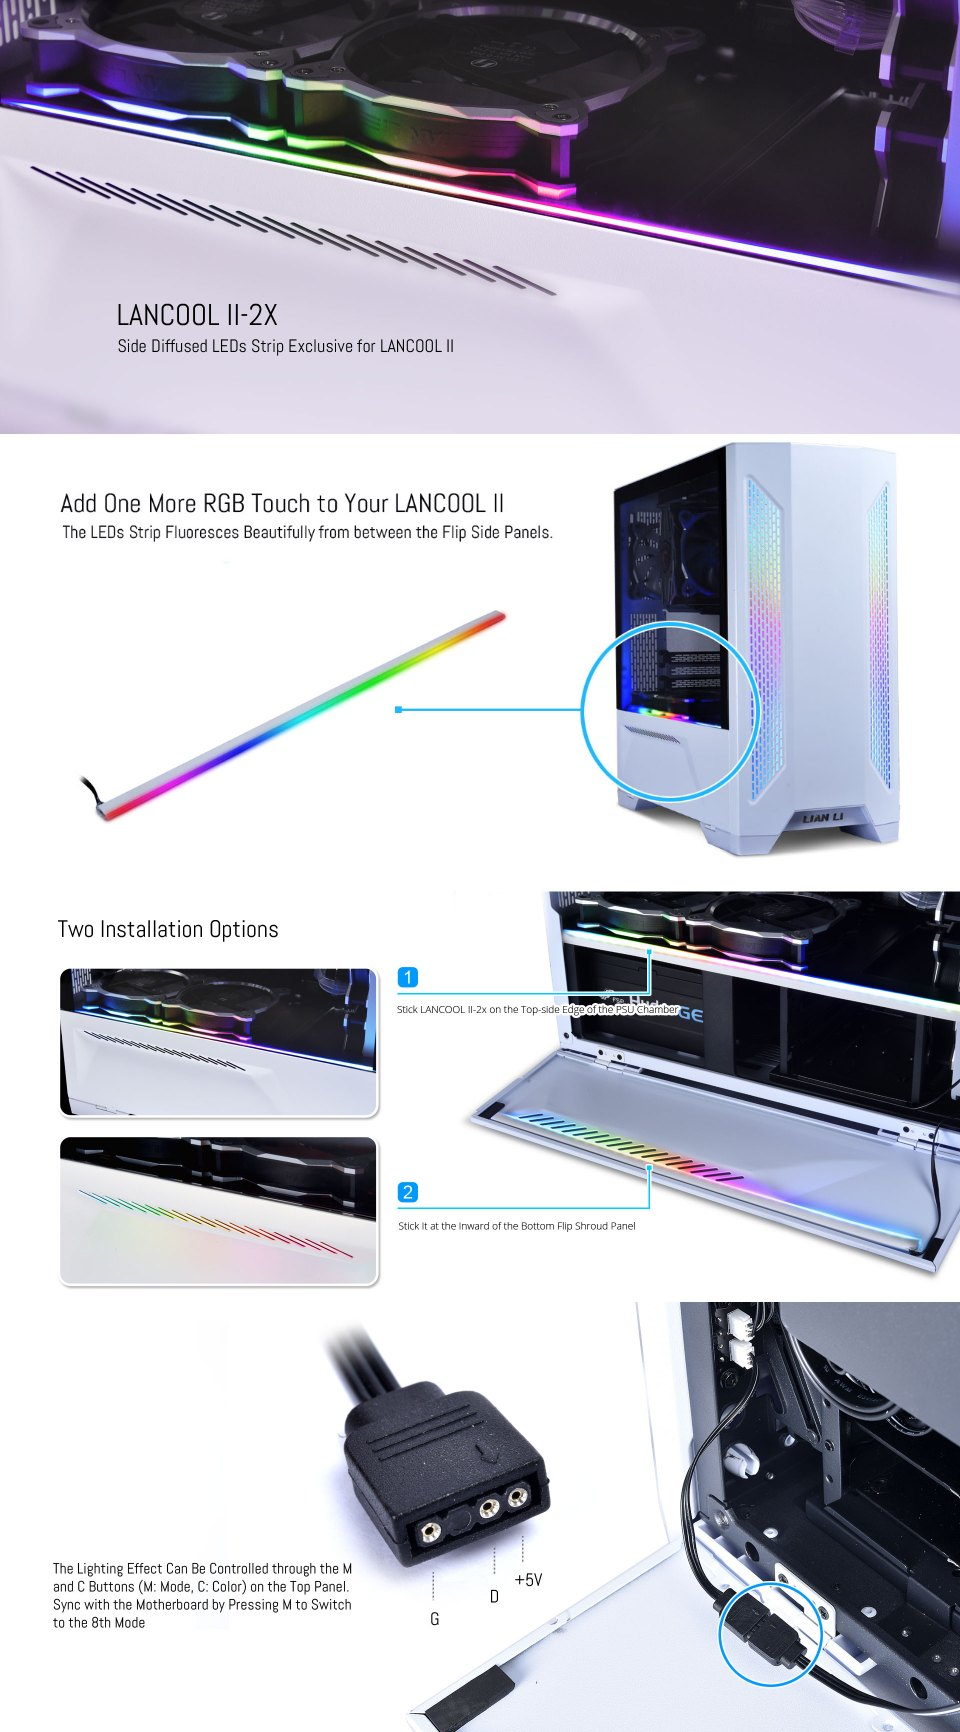 Lian Li Side Diffused ARTB Strip For Lancool Two features